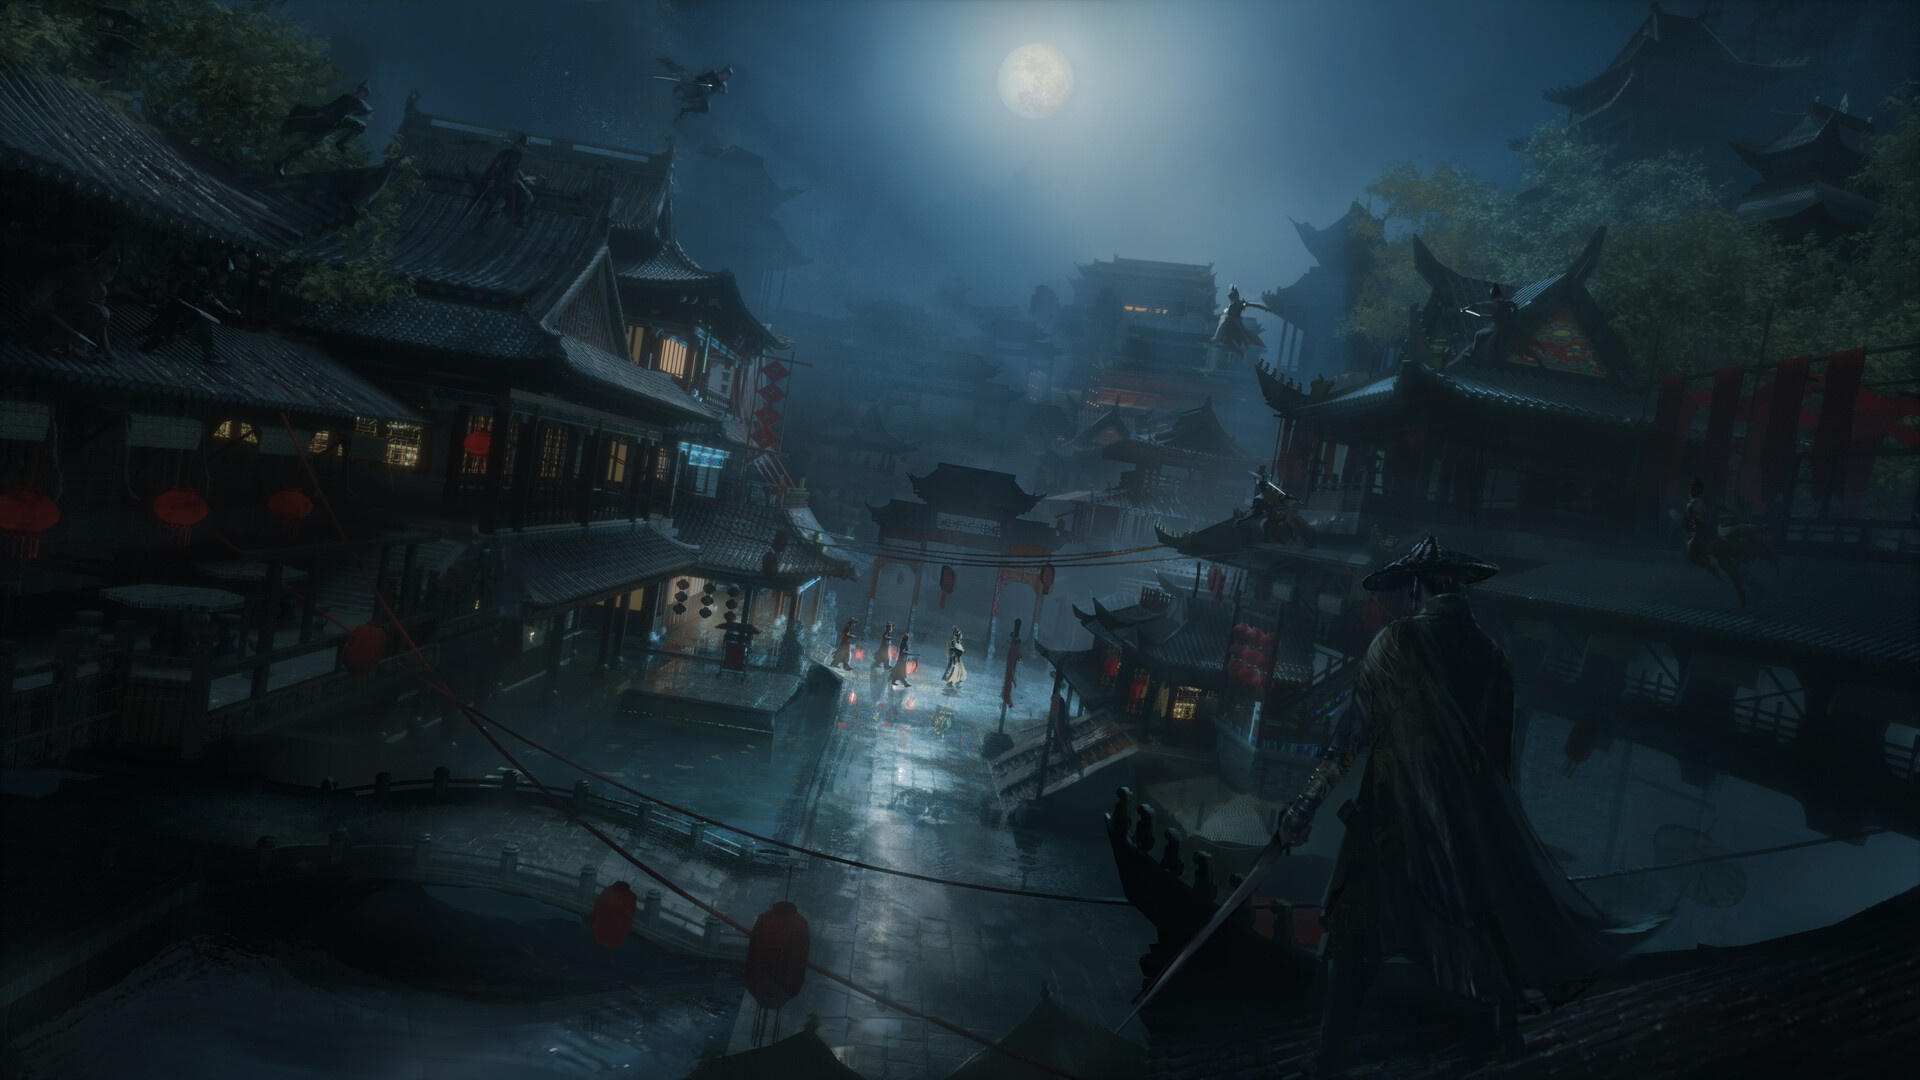 General 1920x1080 Asia artwork fantasy art fantasy city night Moon WuXia Chinese architecture